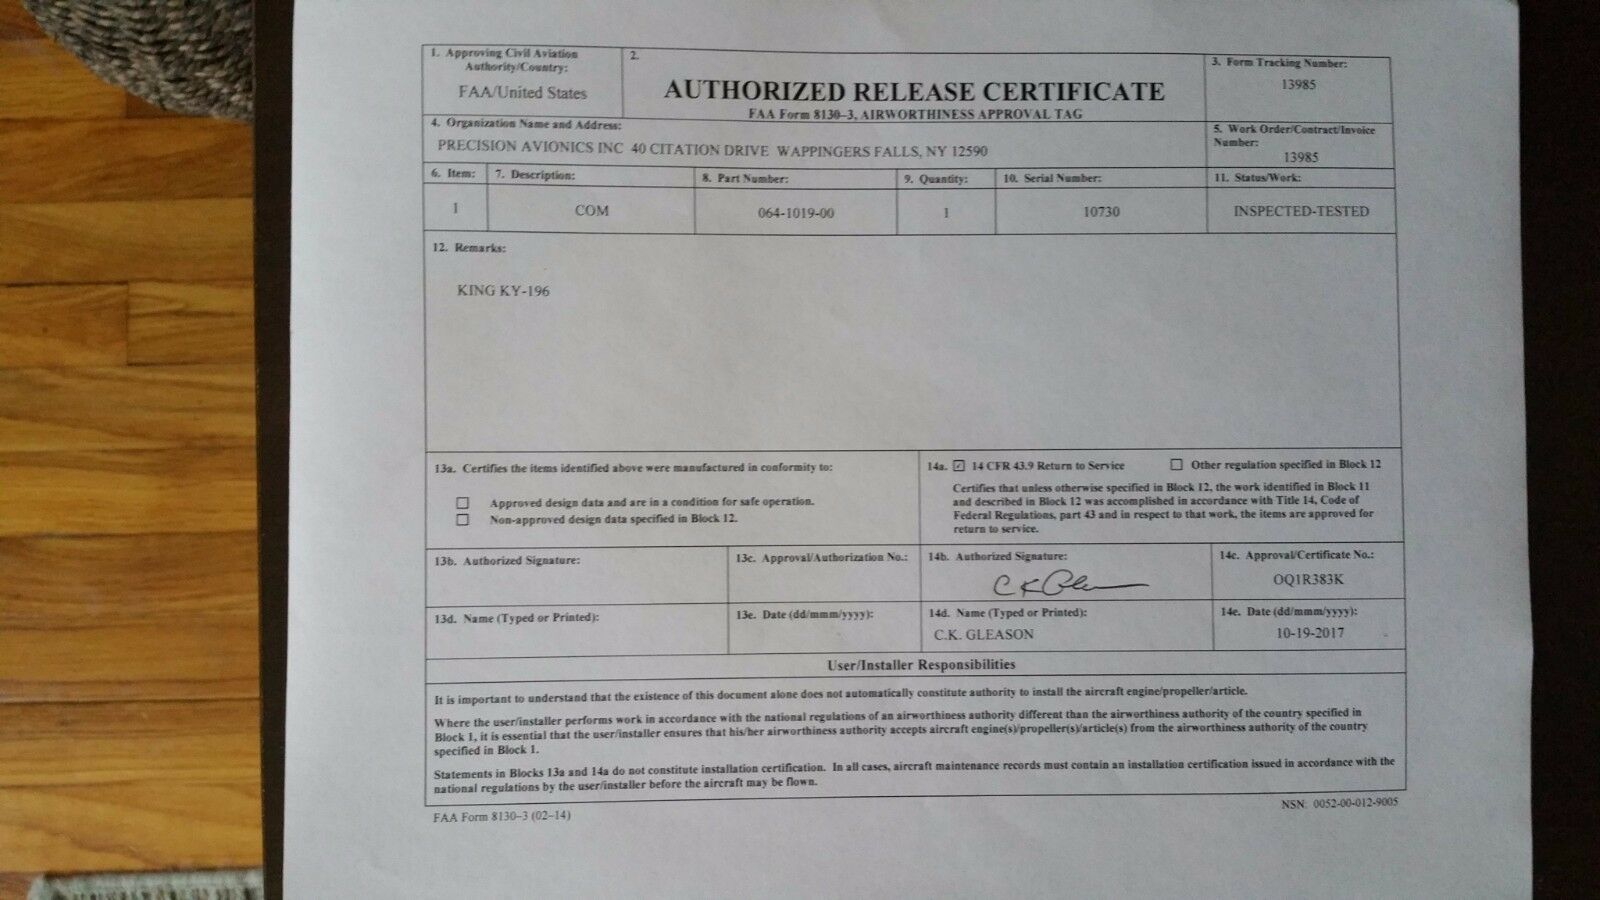 BENDIX/KING KY 196 28 VDC P/N 064-1019-00  WITH  FRESH FAA FORM 8130-3